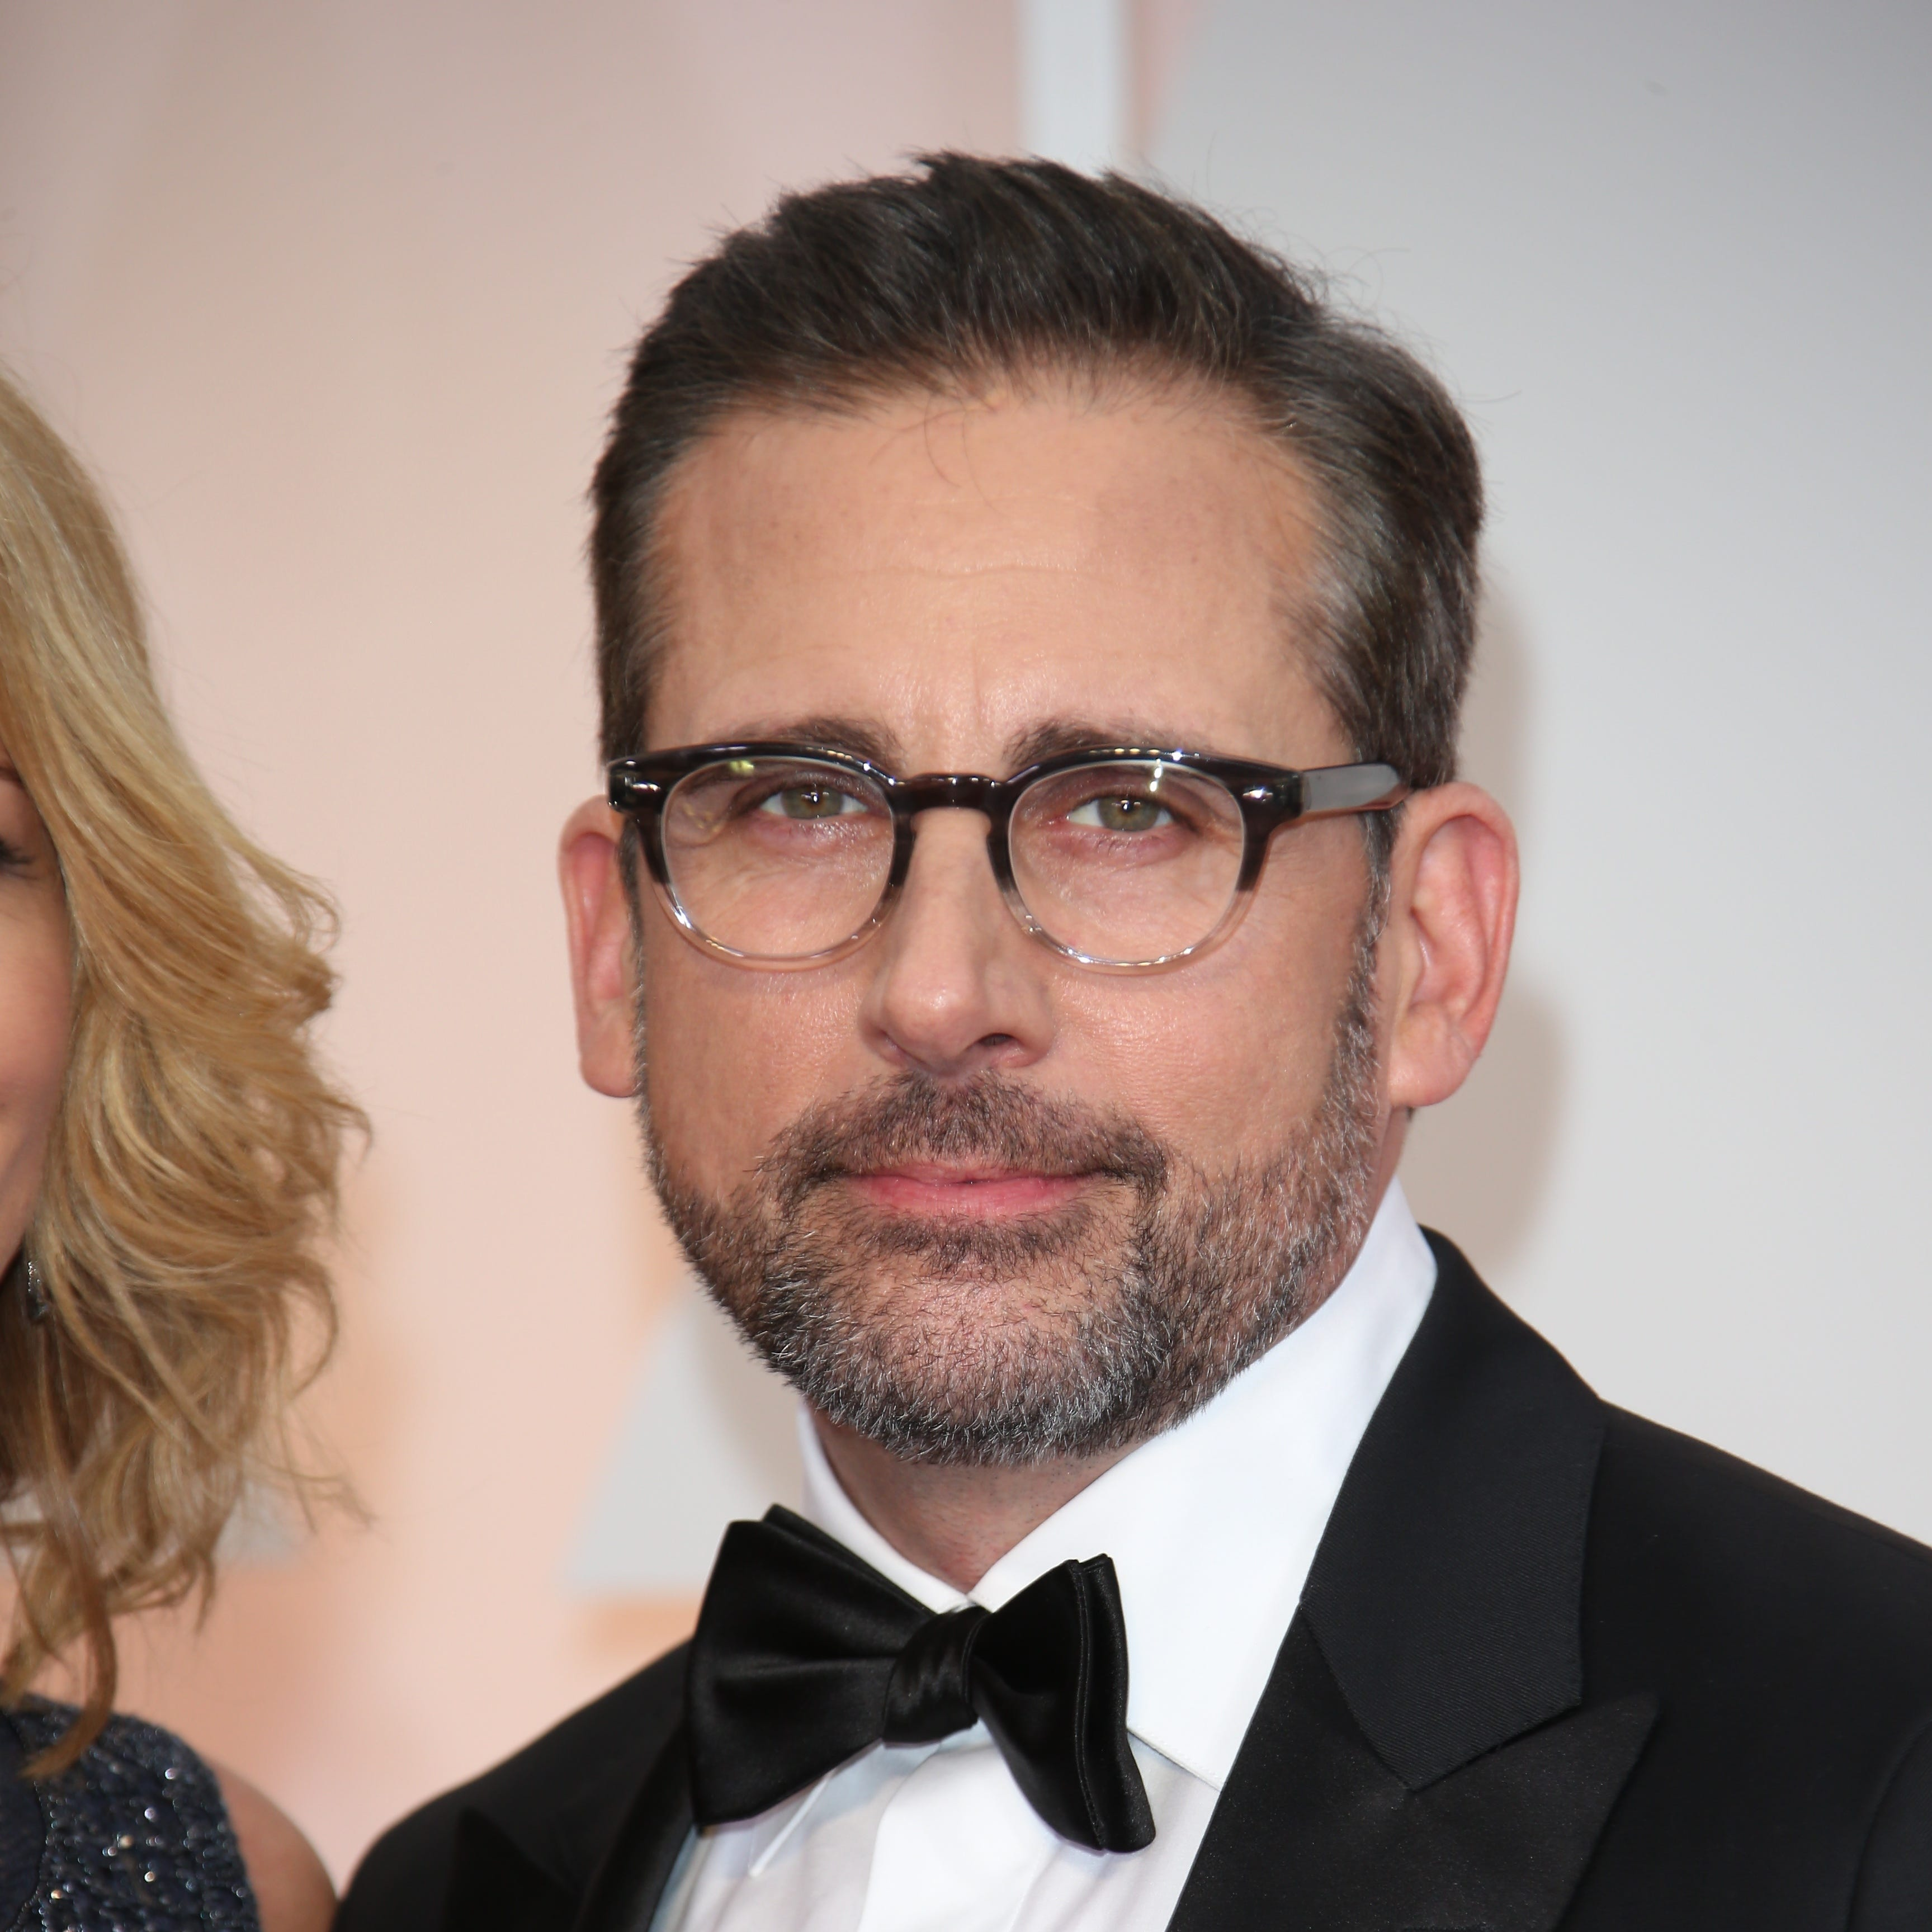 Steve Carell of 'The Office' will star in Netflix's new 'Space Force' series